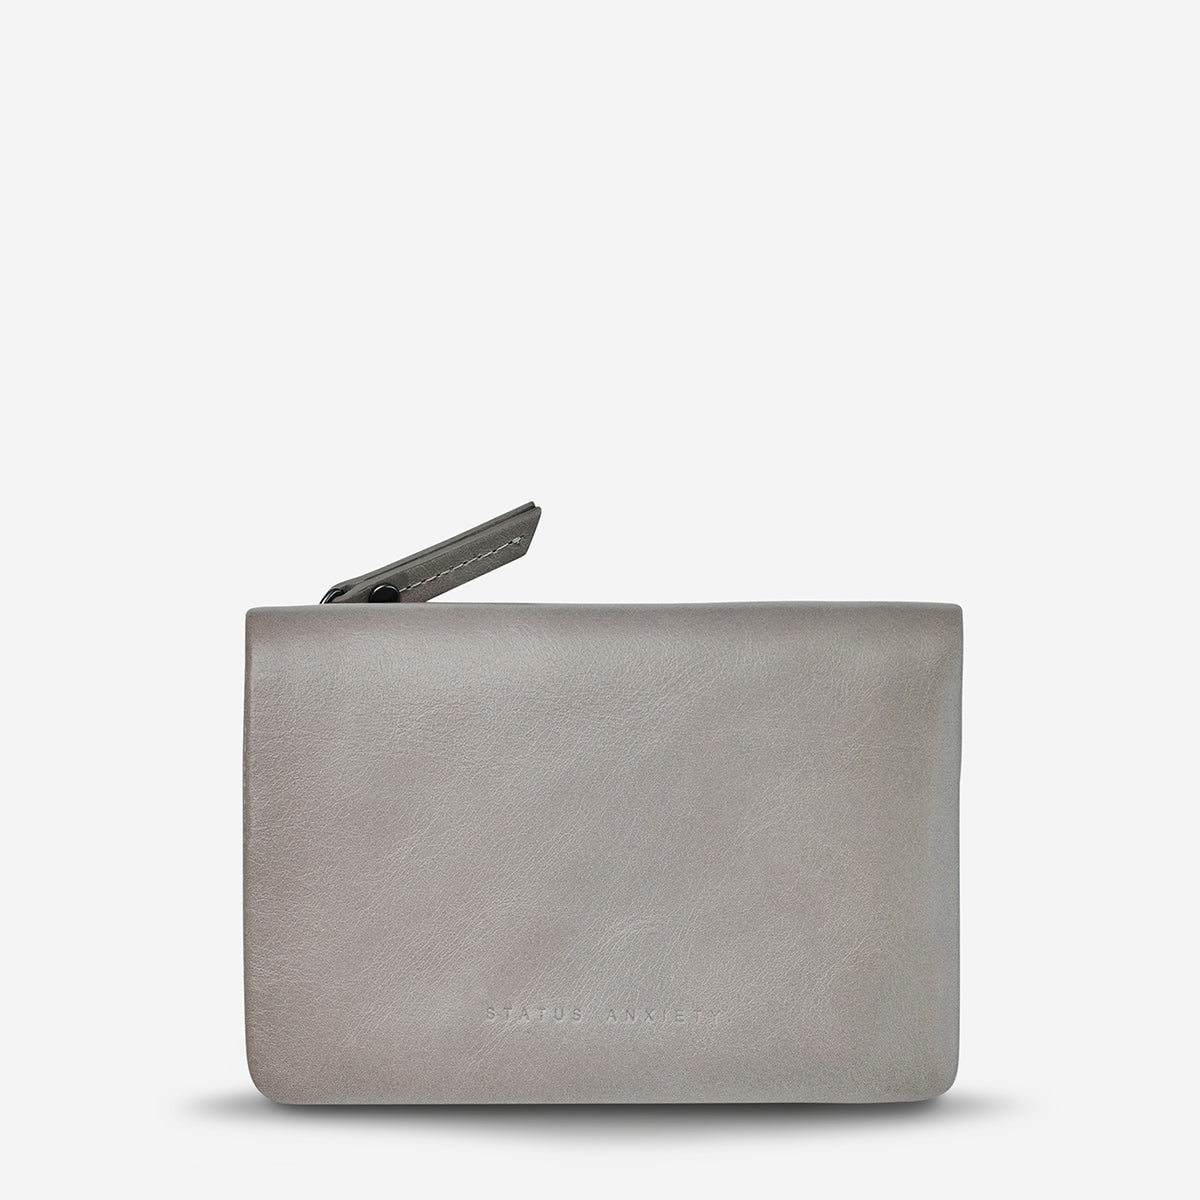 Status Anxiety Is Now Better Small Women's Wallet - Light Grey